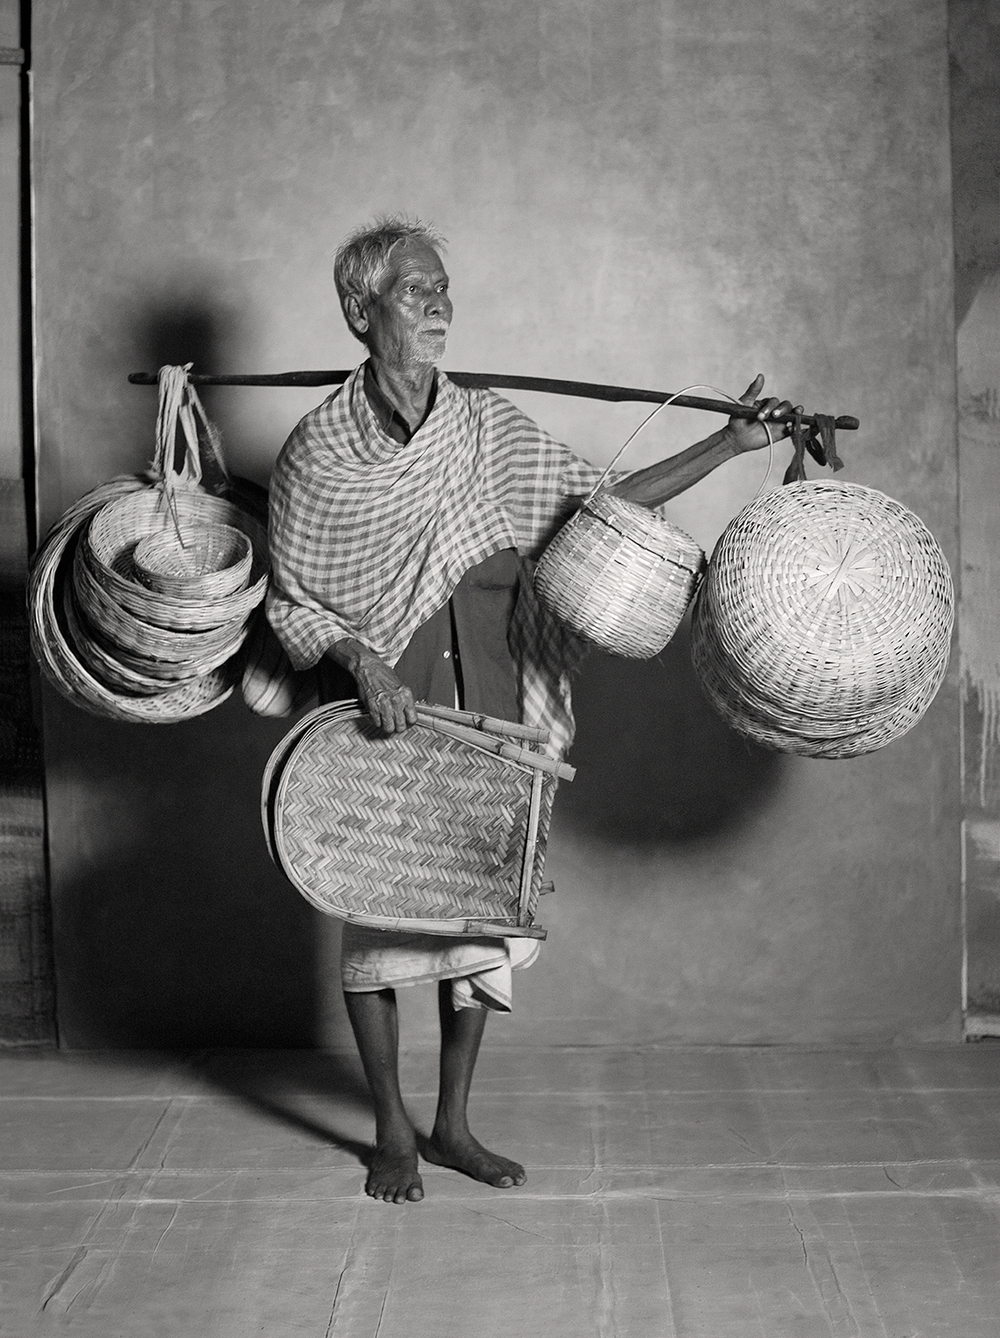 CANE-BASKET MAKER/SELLER, $10 WEEKLY, 2011